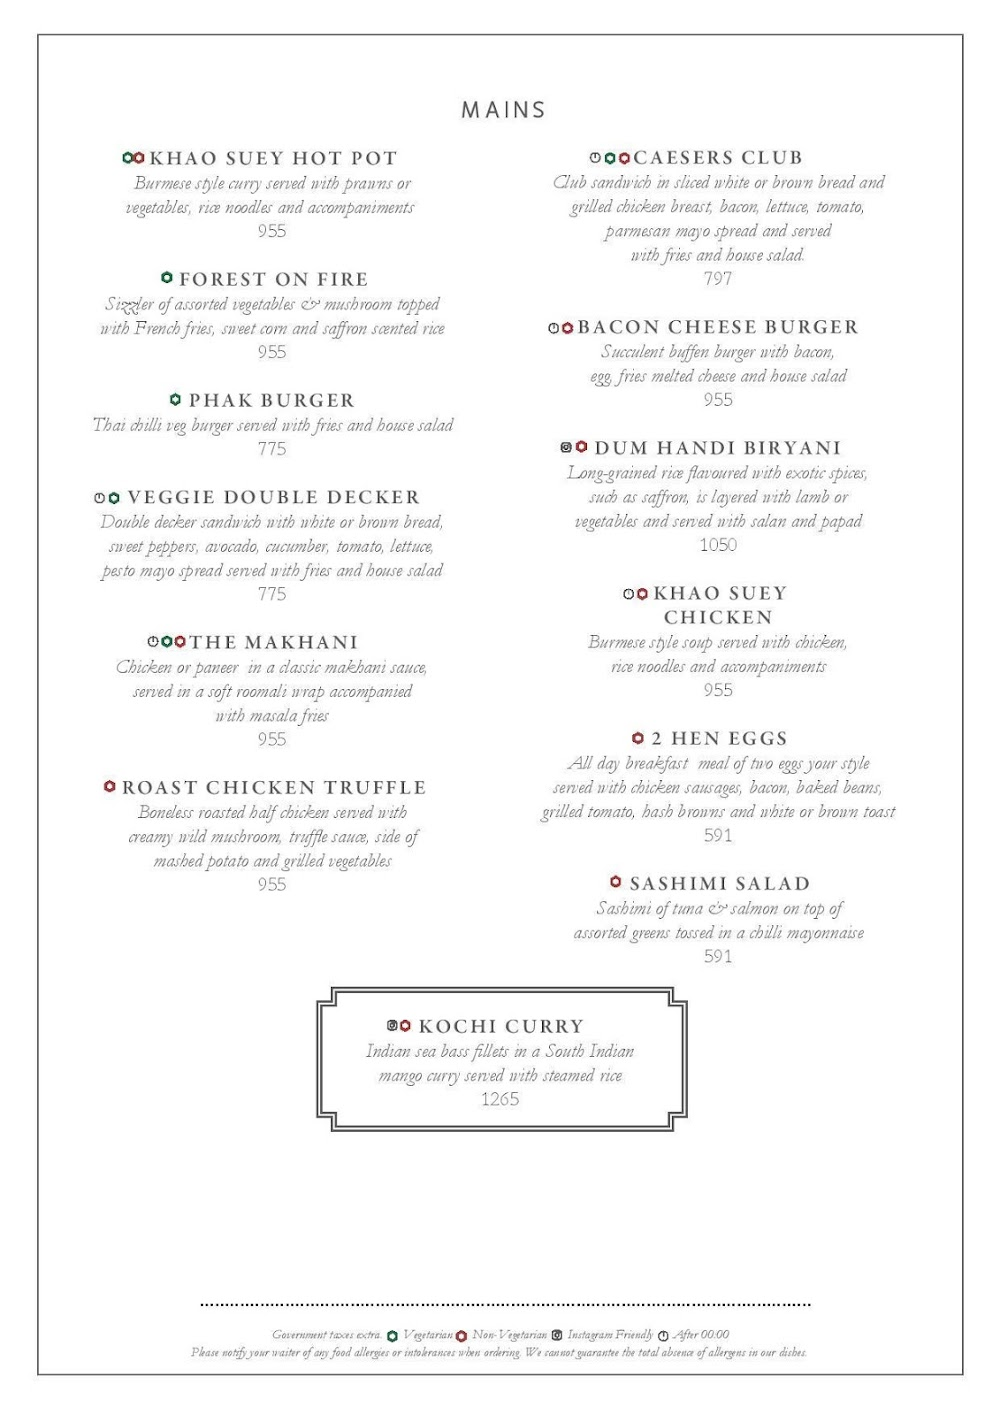 Long & Short - InterContinental menu 6